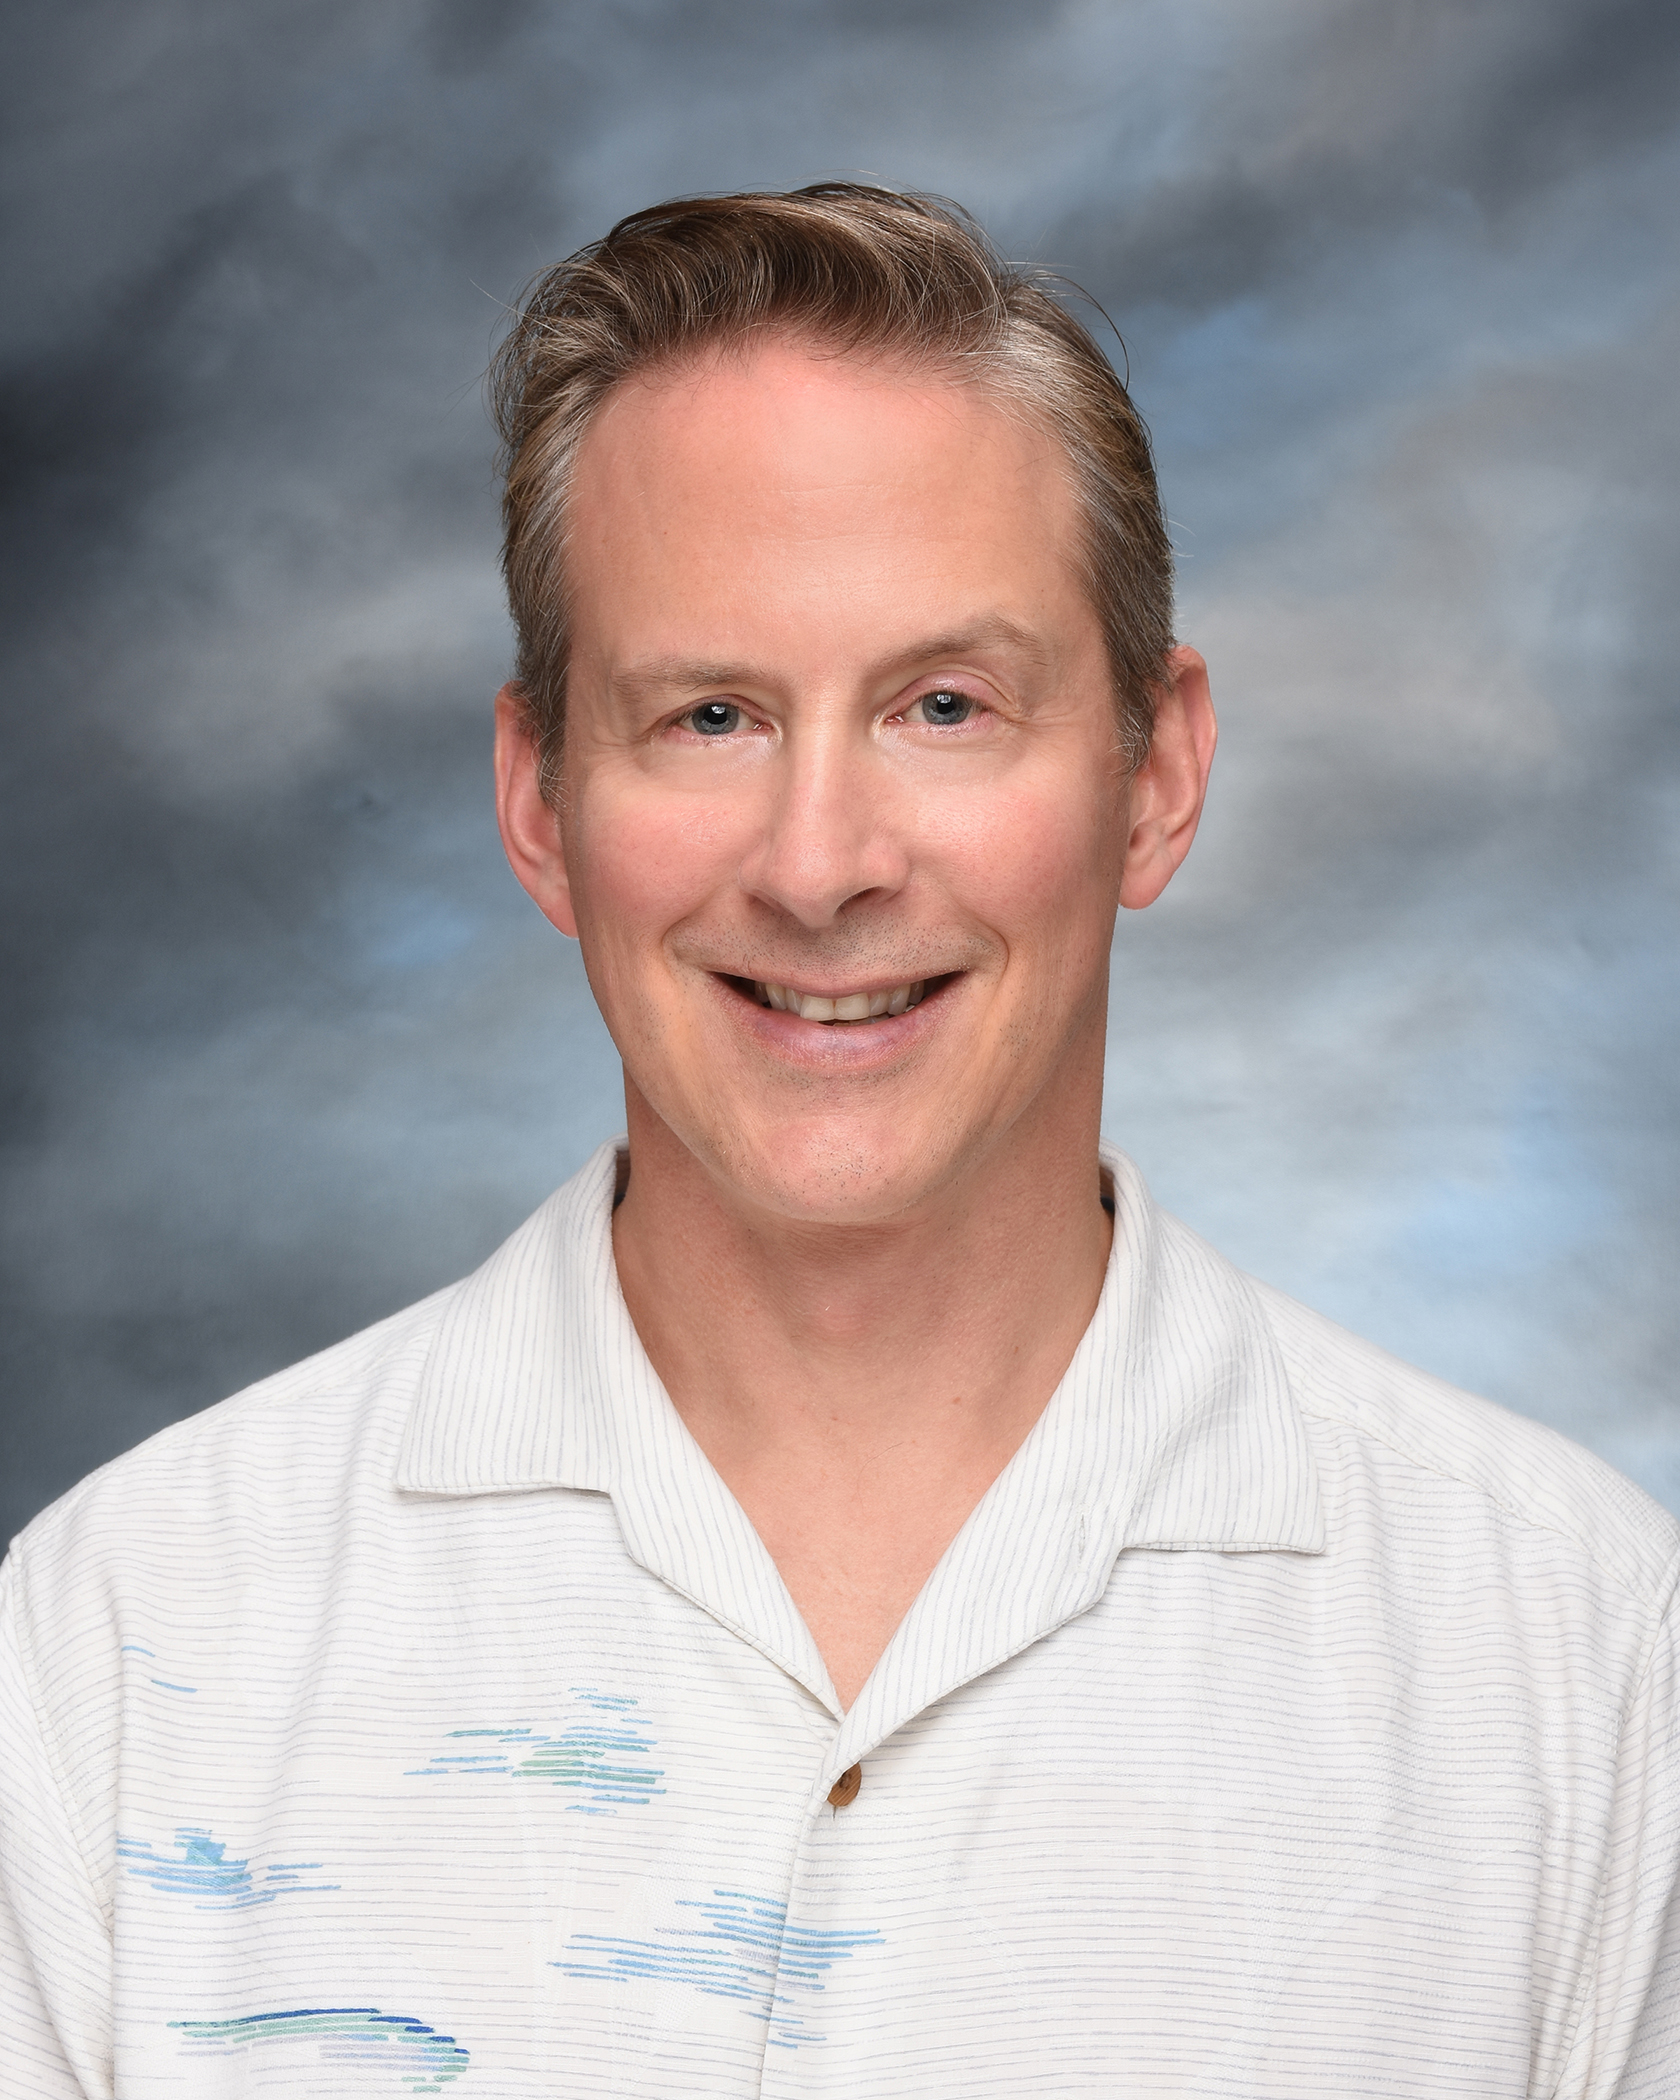 Maui Now : Maui Medical Group Adds Orthopedic Surgeon to Team